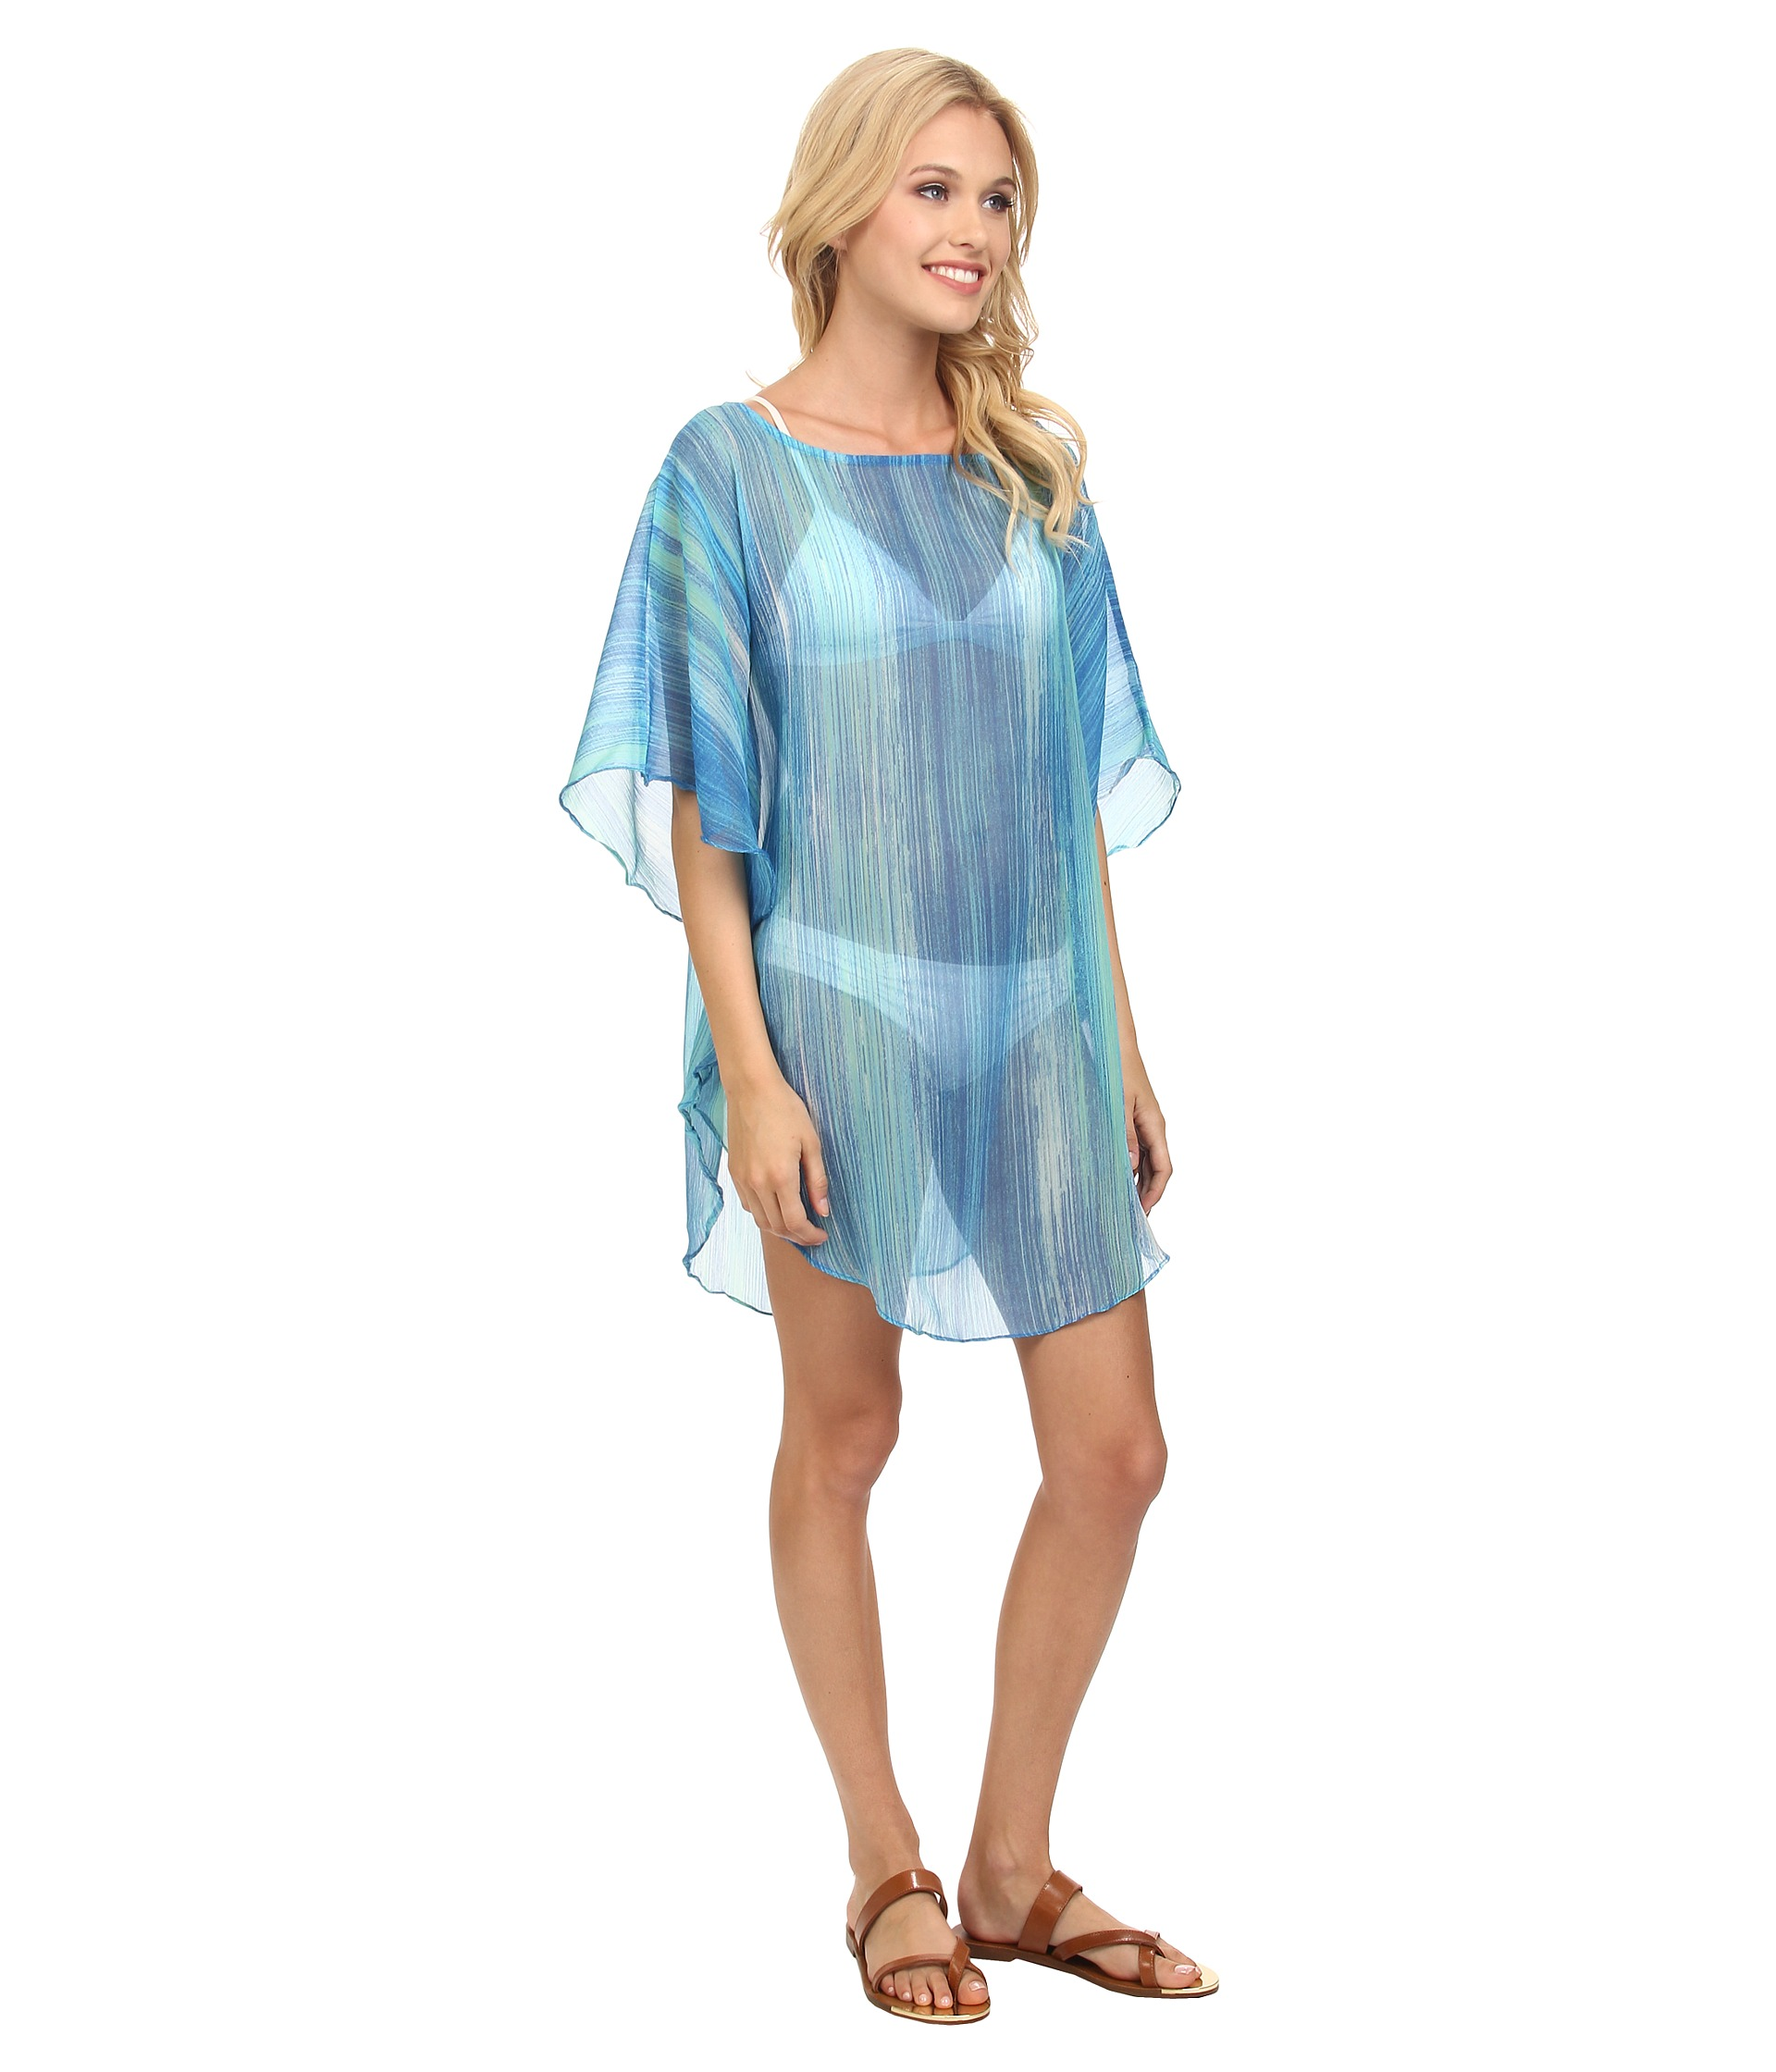 Swim 365 Women's Plus Size Cover-Up For Swimsuit, Hooded In Terrycloth